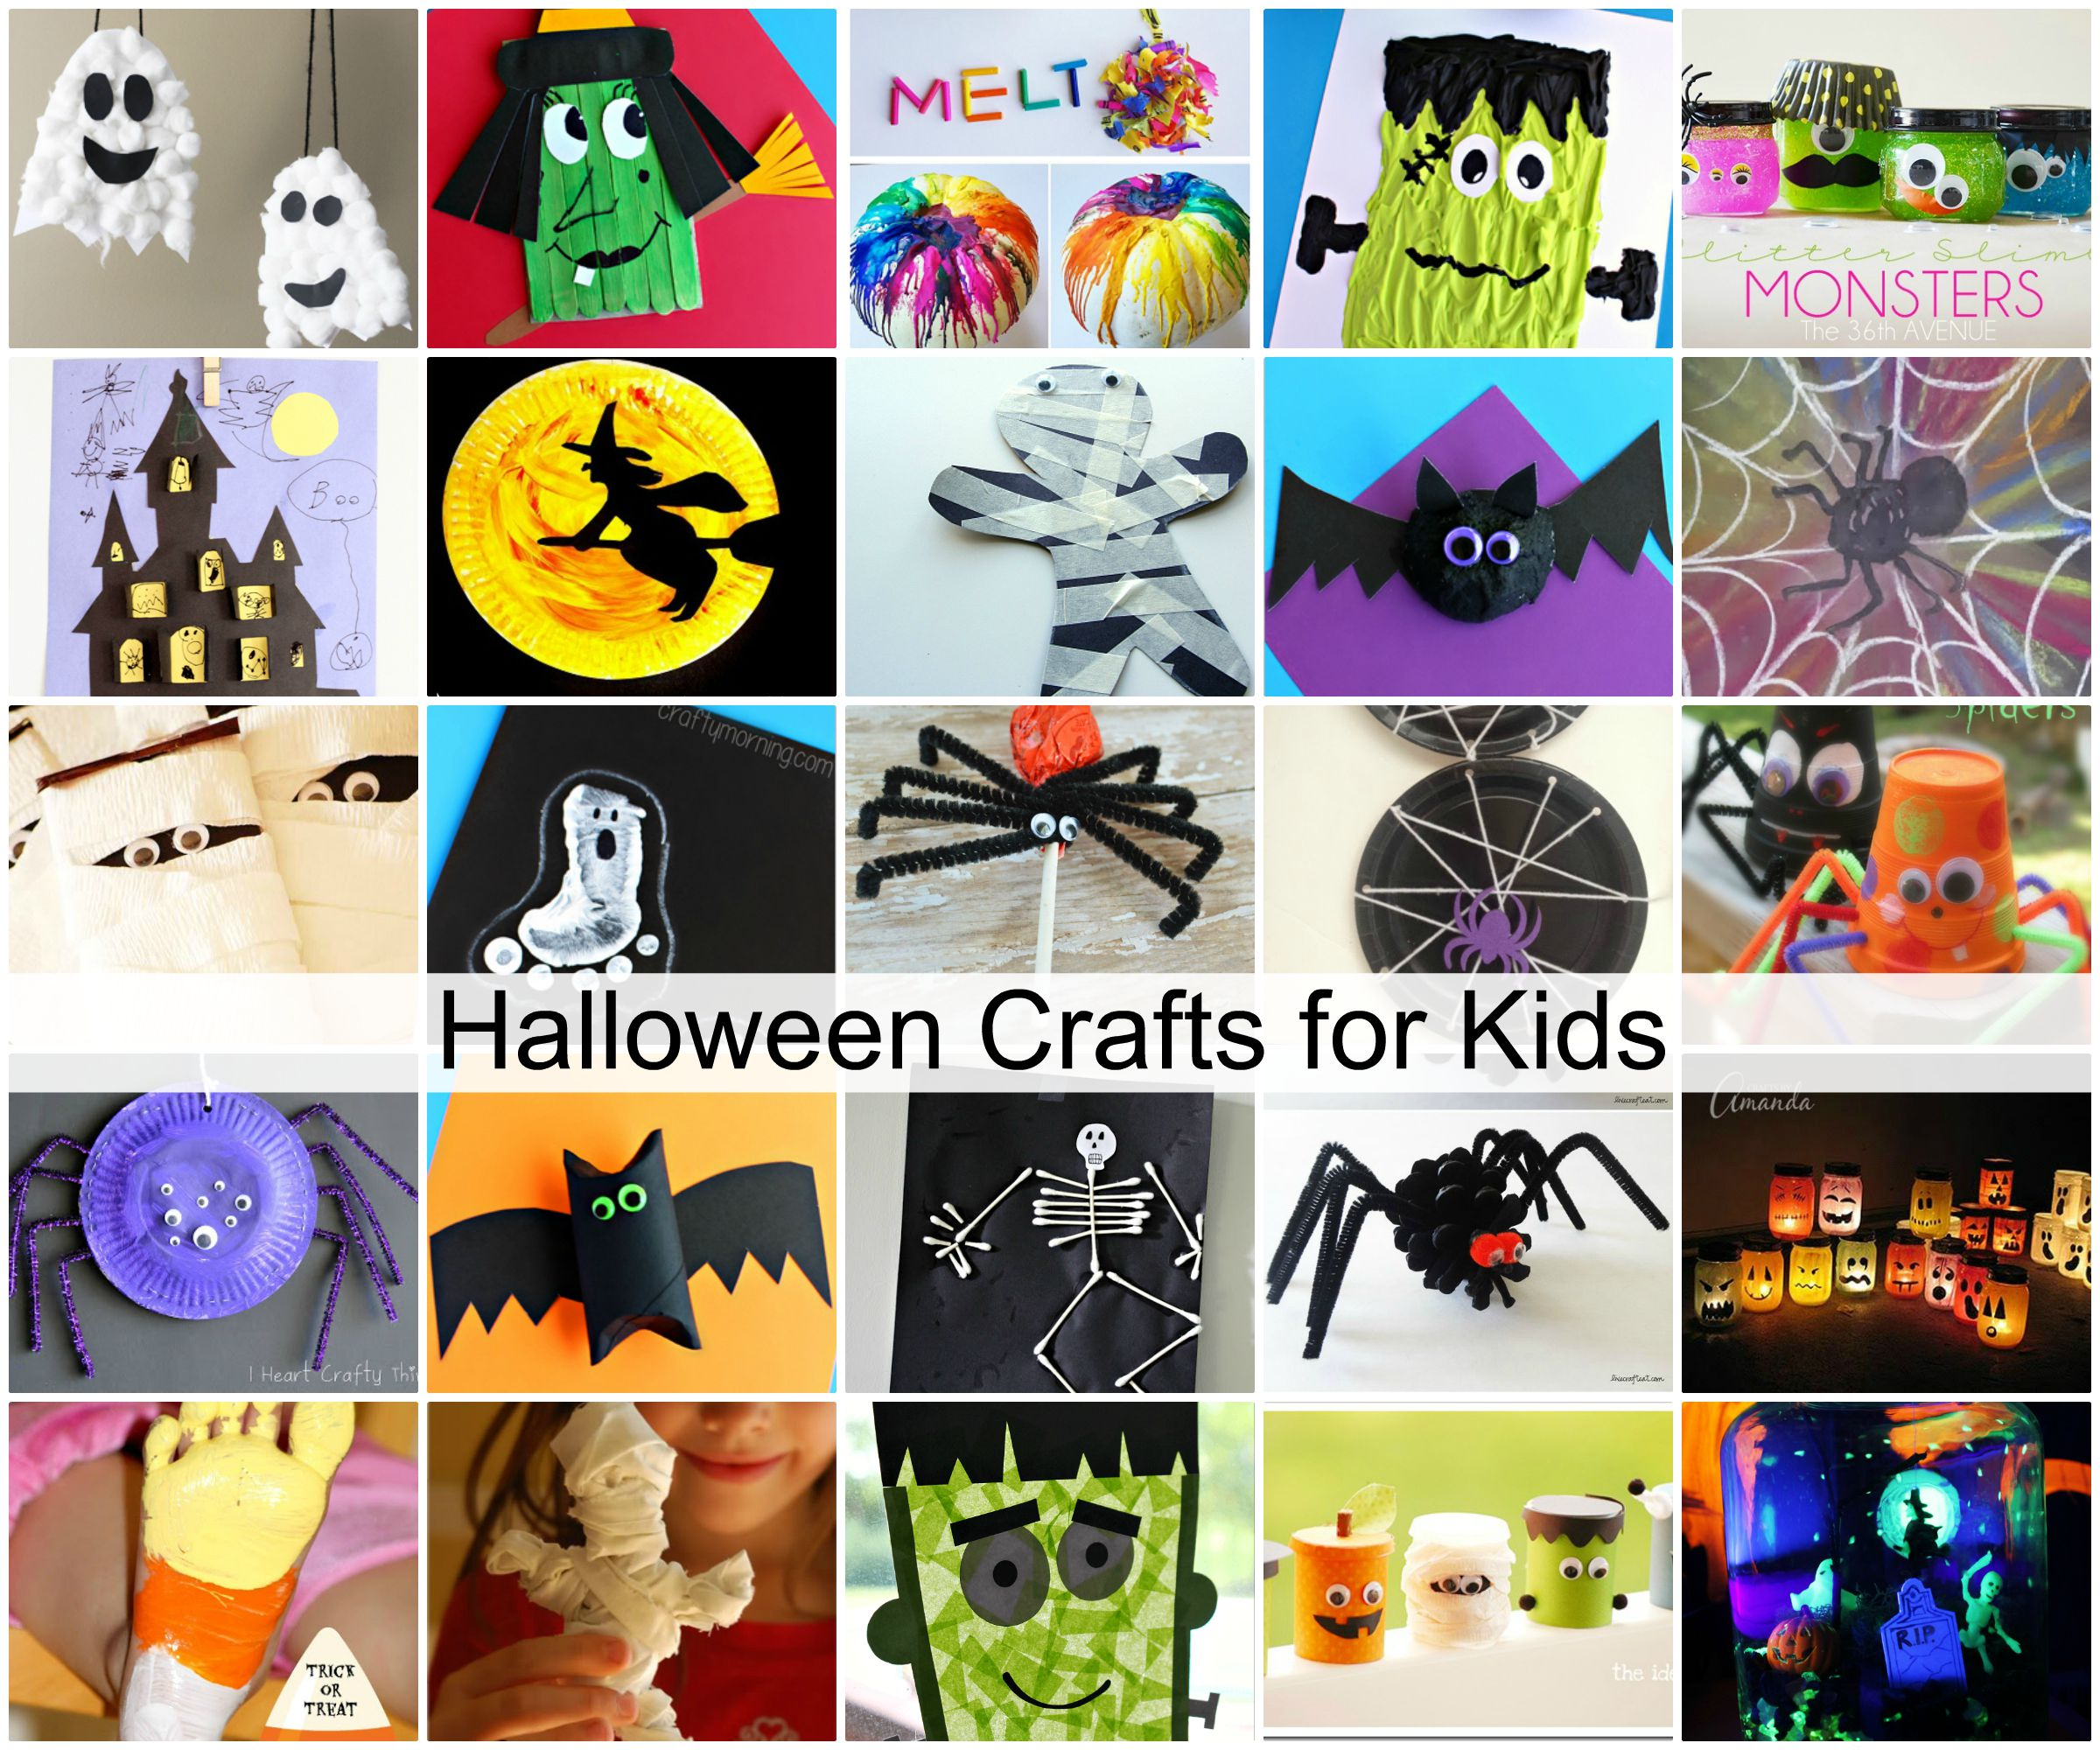 Halloween-Crafts-for-Kids-1